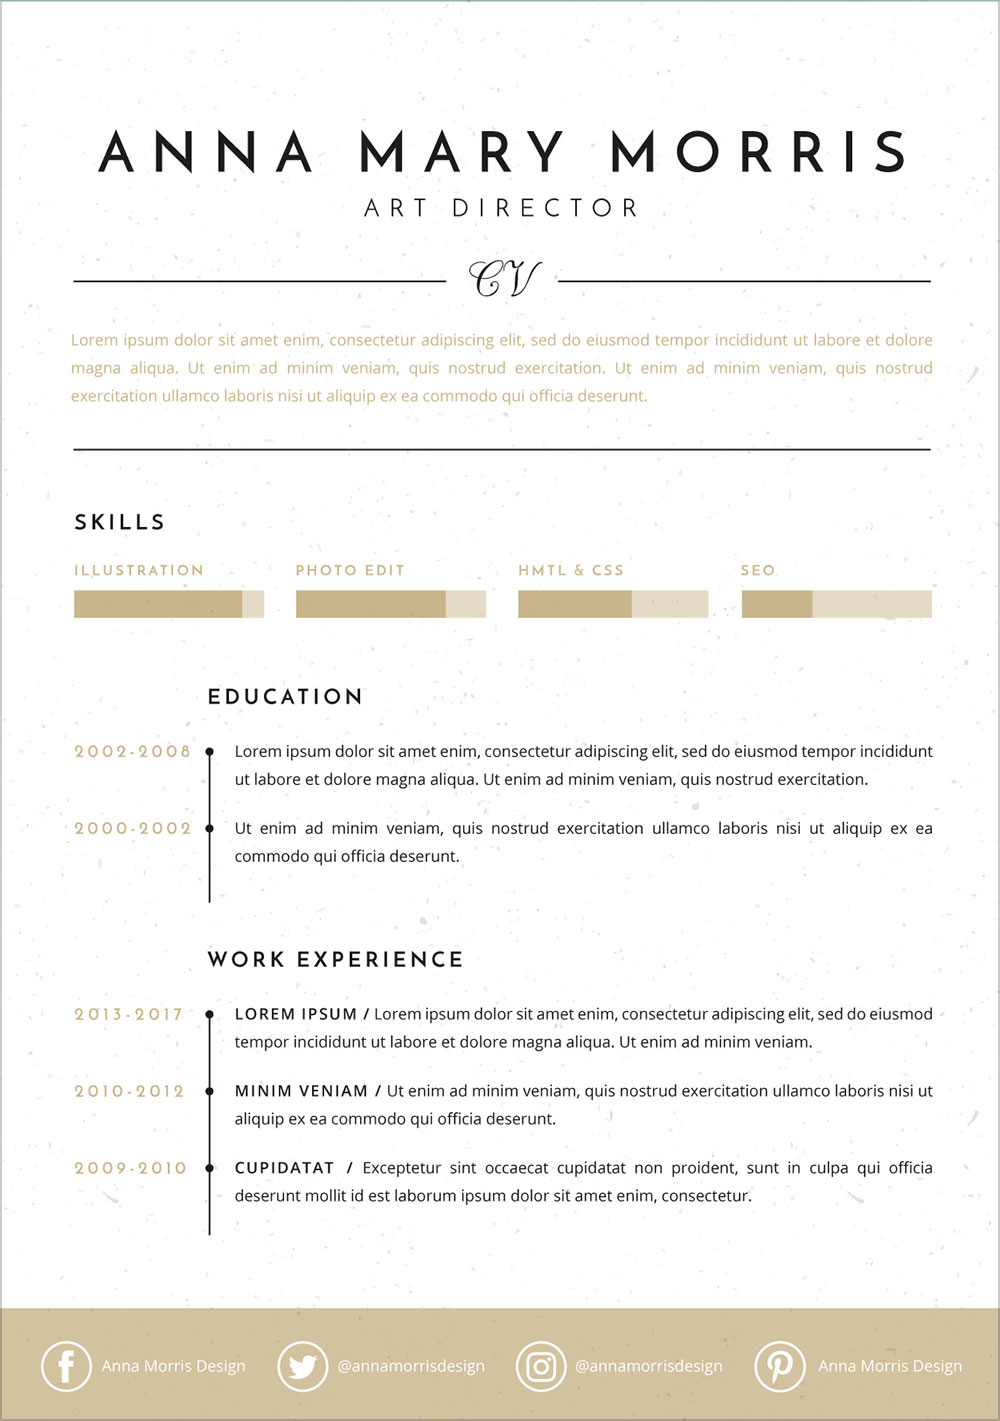 Free-Minimalistic-Ai-Resume-Template-for-Art-Directors-2